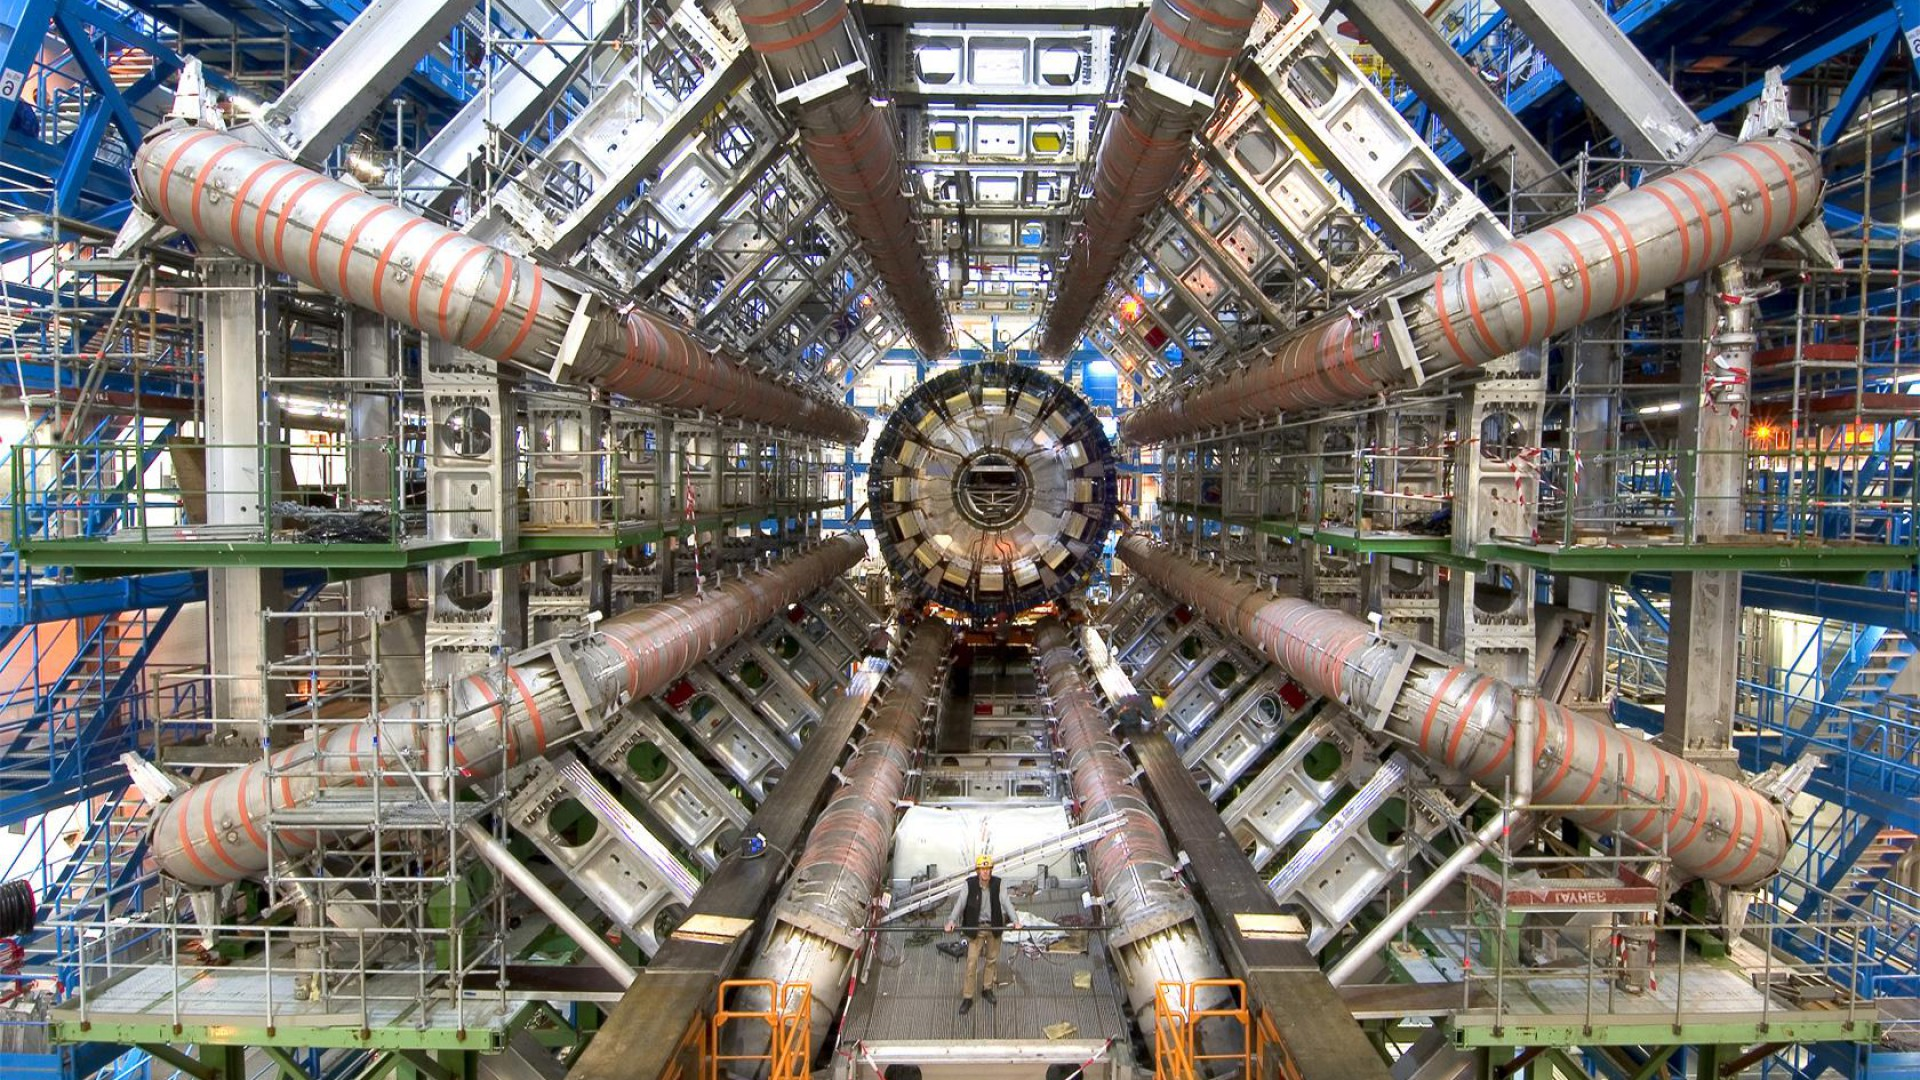 Weasel temporarily shuts down the Large Hadron Collider